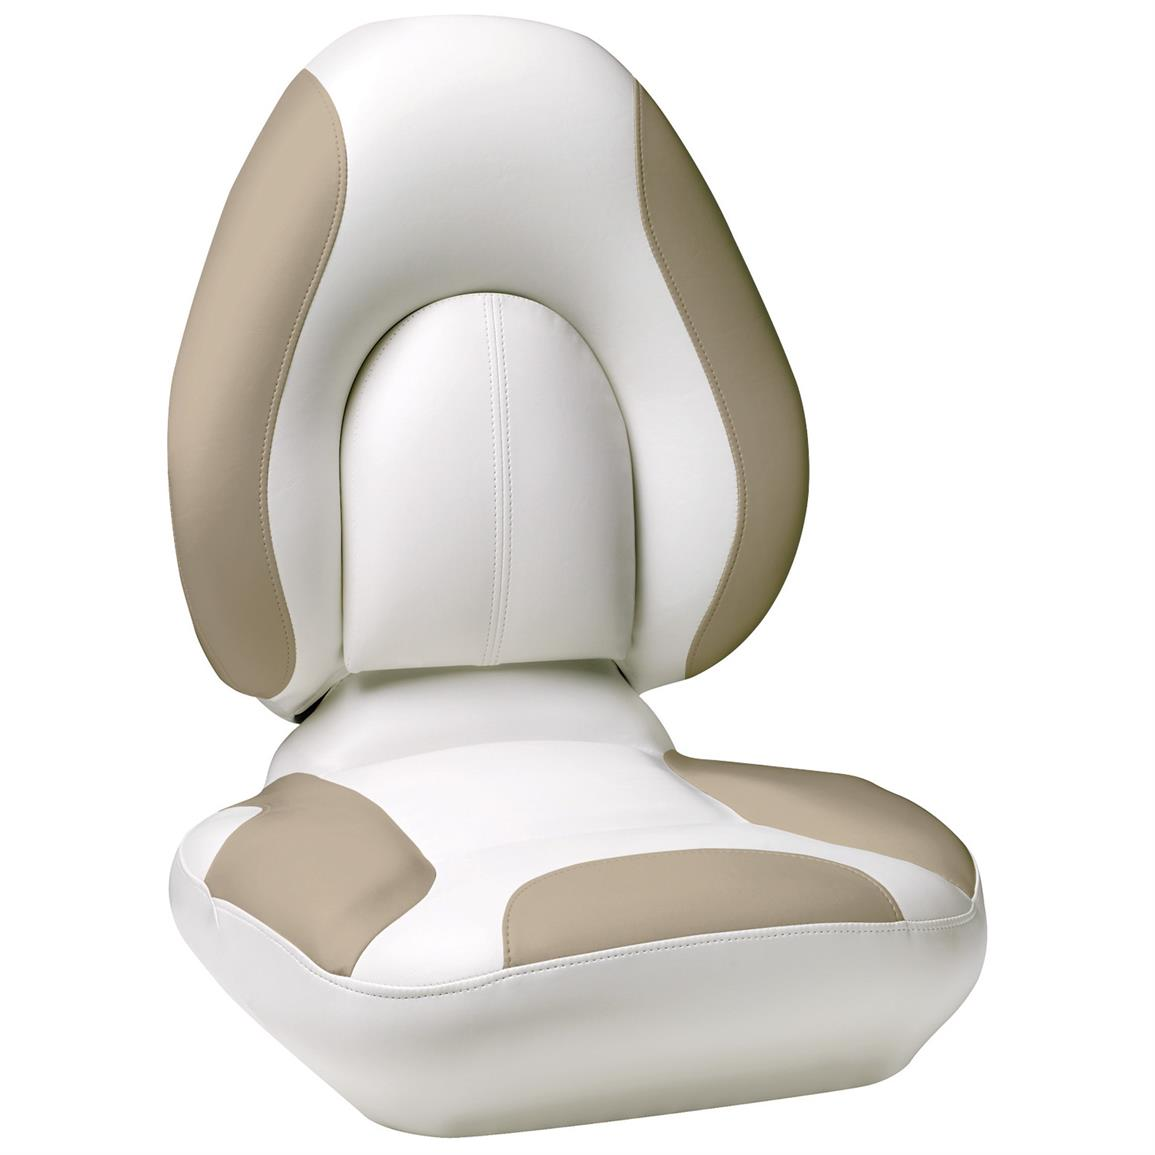 Attwood® Centric SAS™ Boat Seat, Bright White Base Color / Beige